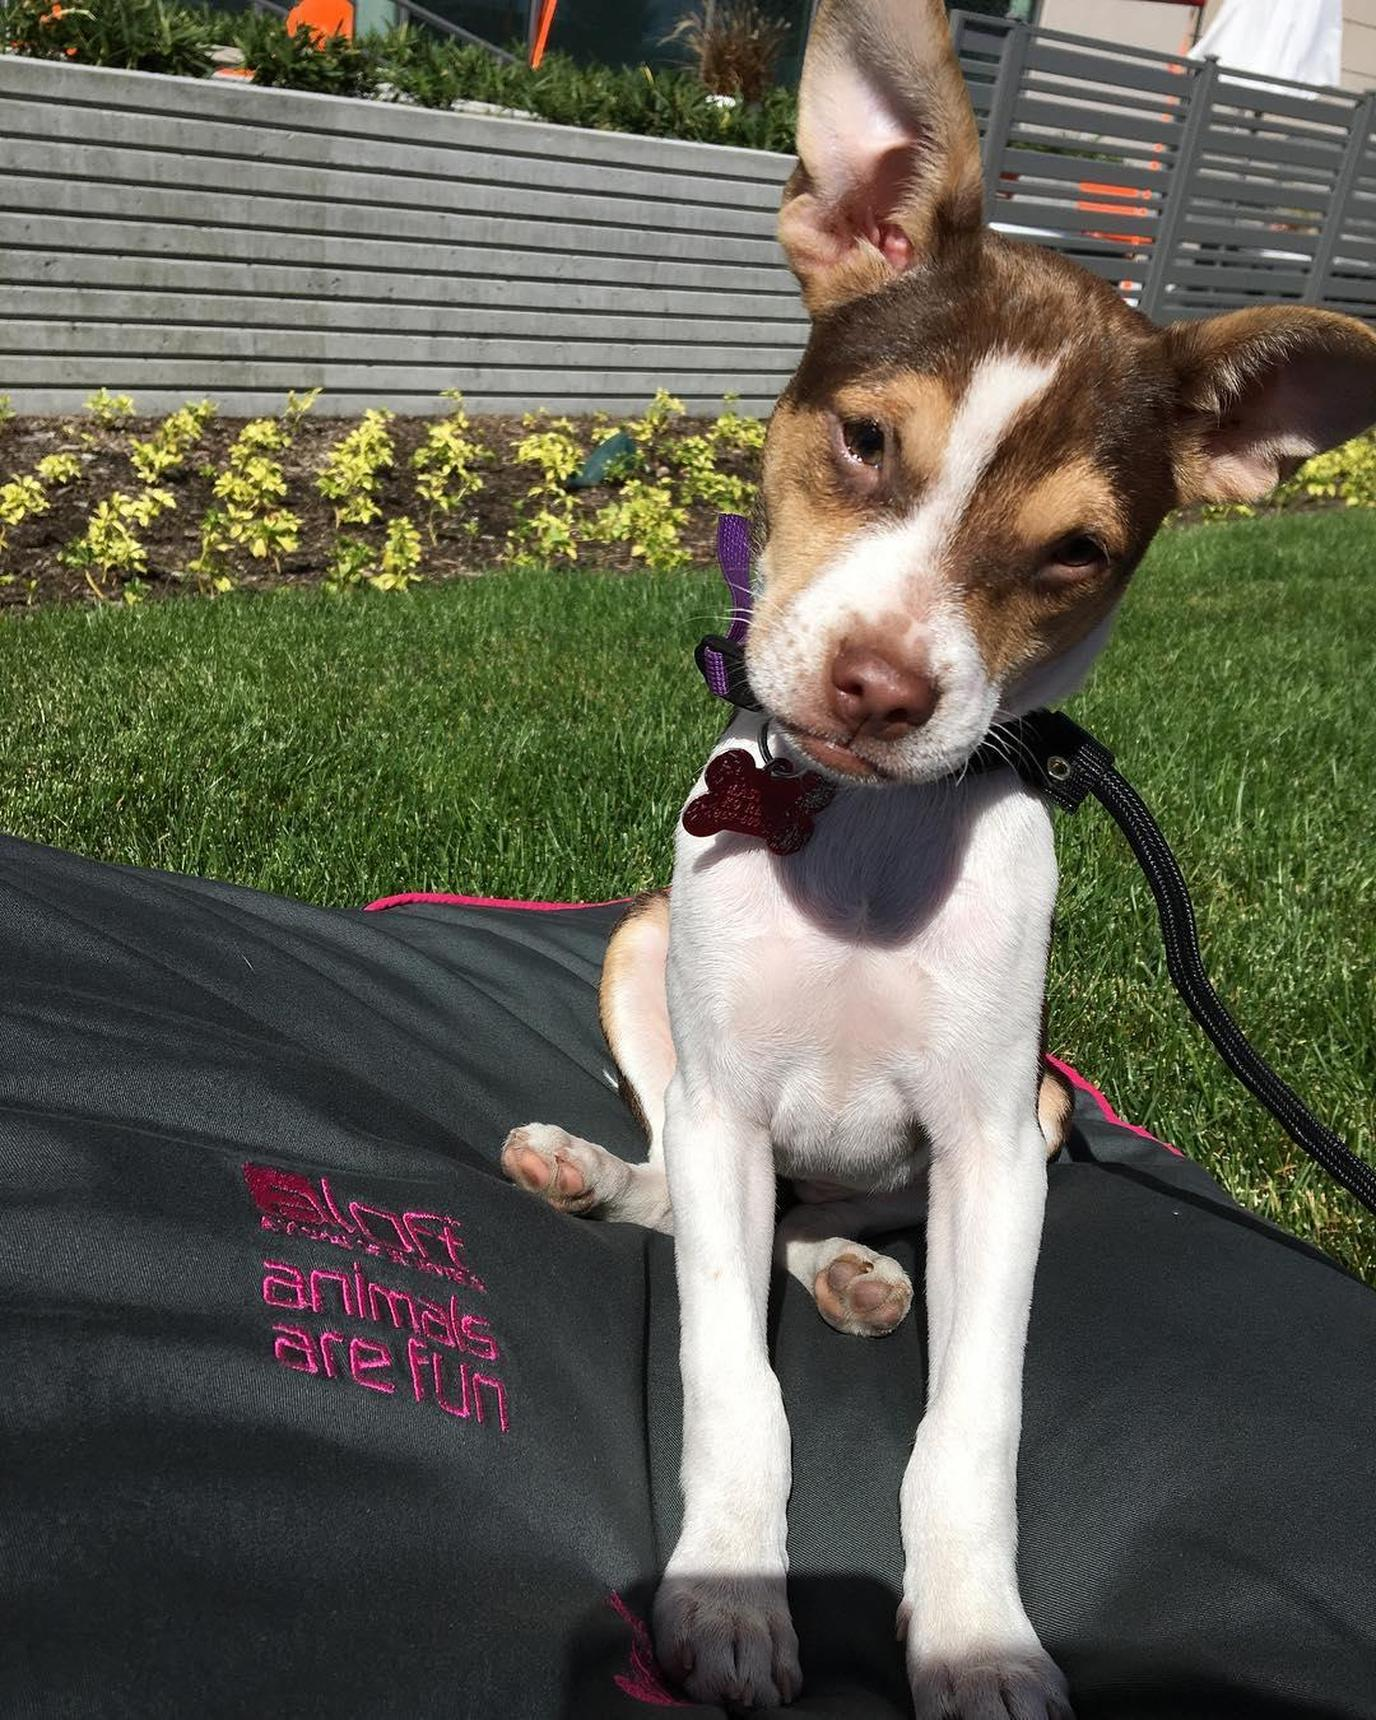 Aloft Boston Seaport welcomes dogs to stay for no pet fee.